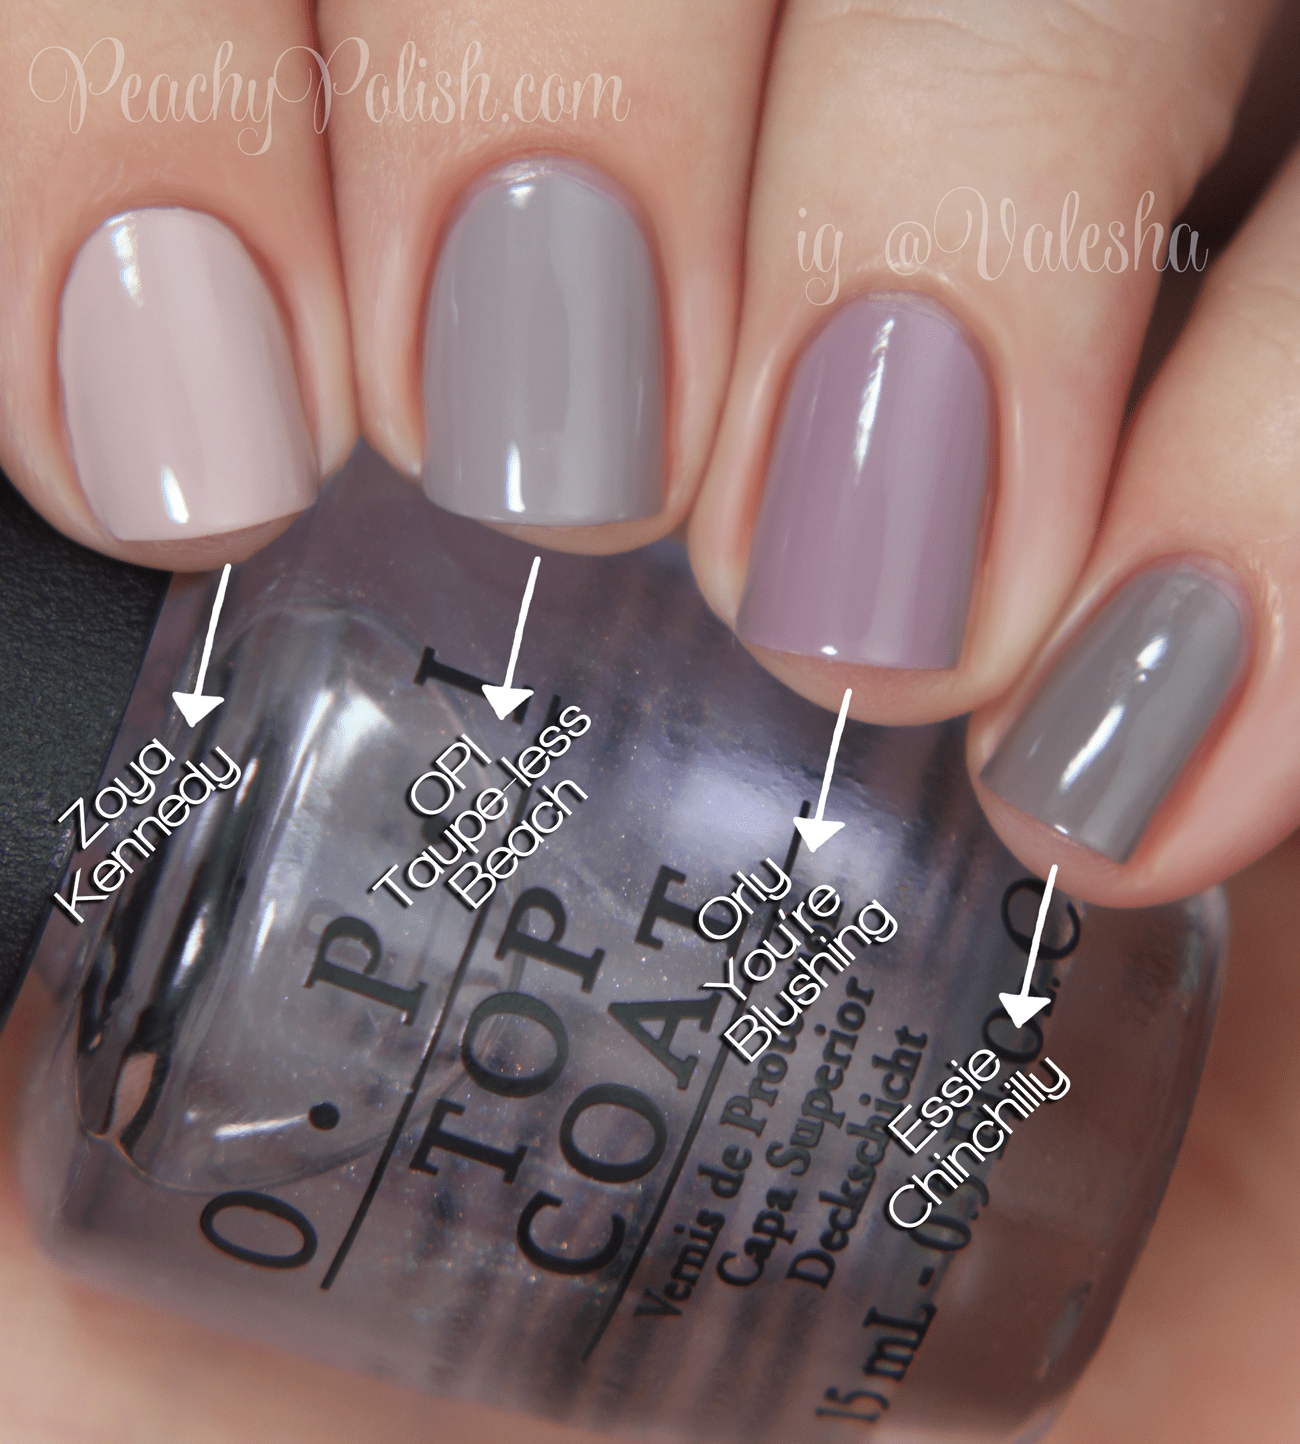 OPI Taupe-less Beach Comparison - Peachy Polish | Beauty | Pinterest ...